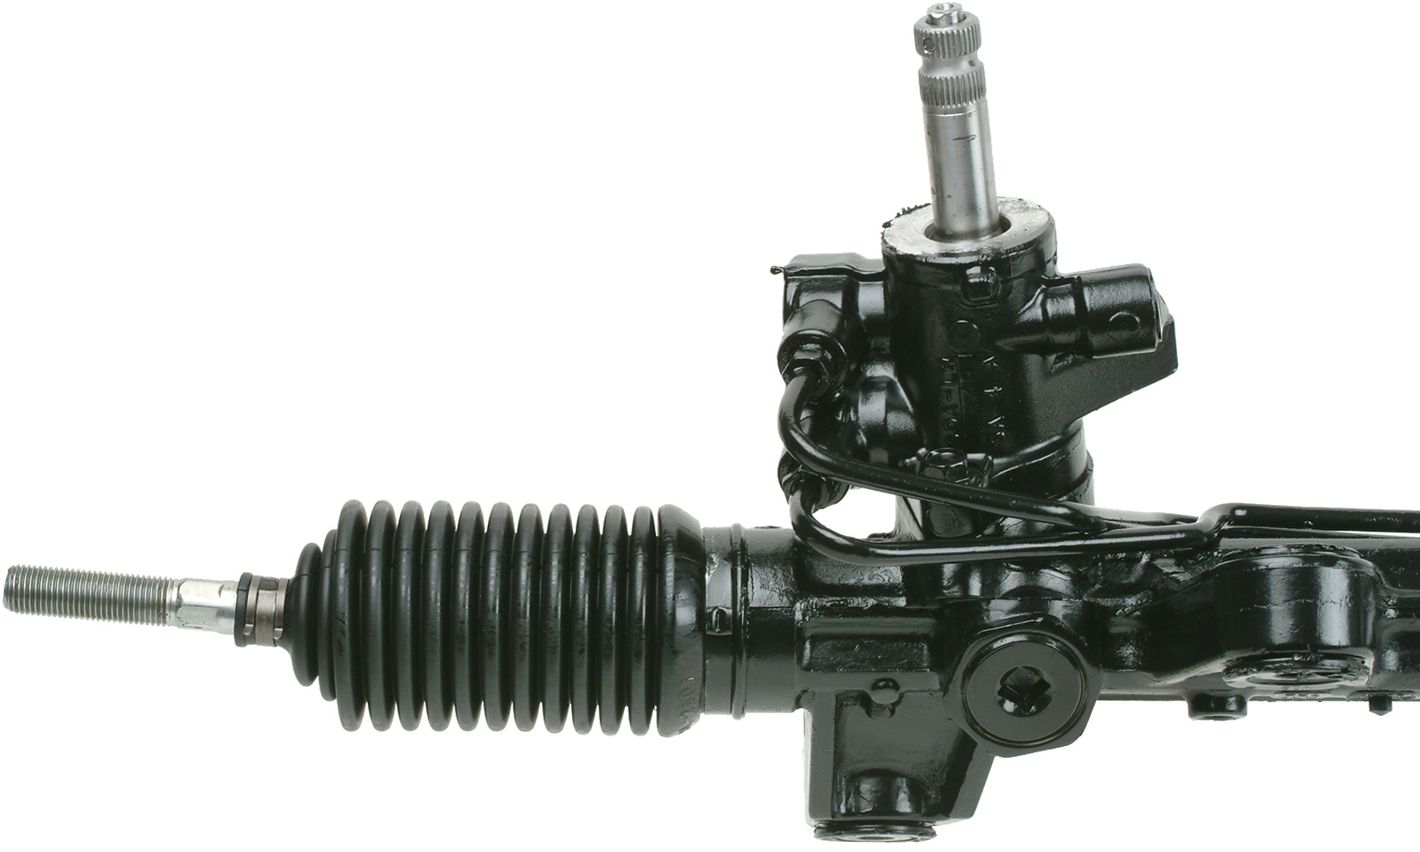 Acura TL Rack And Pinion Assembly AutoPartsKartcom - Acura tl rack and pinion